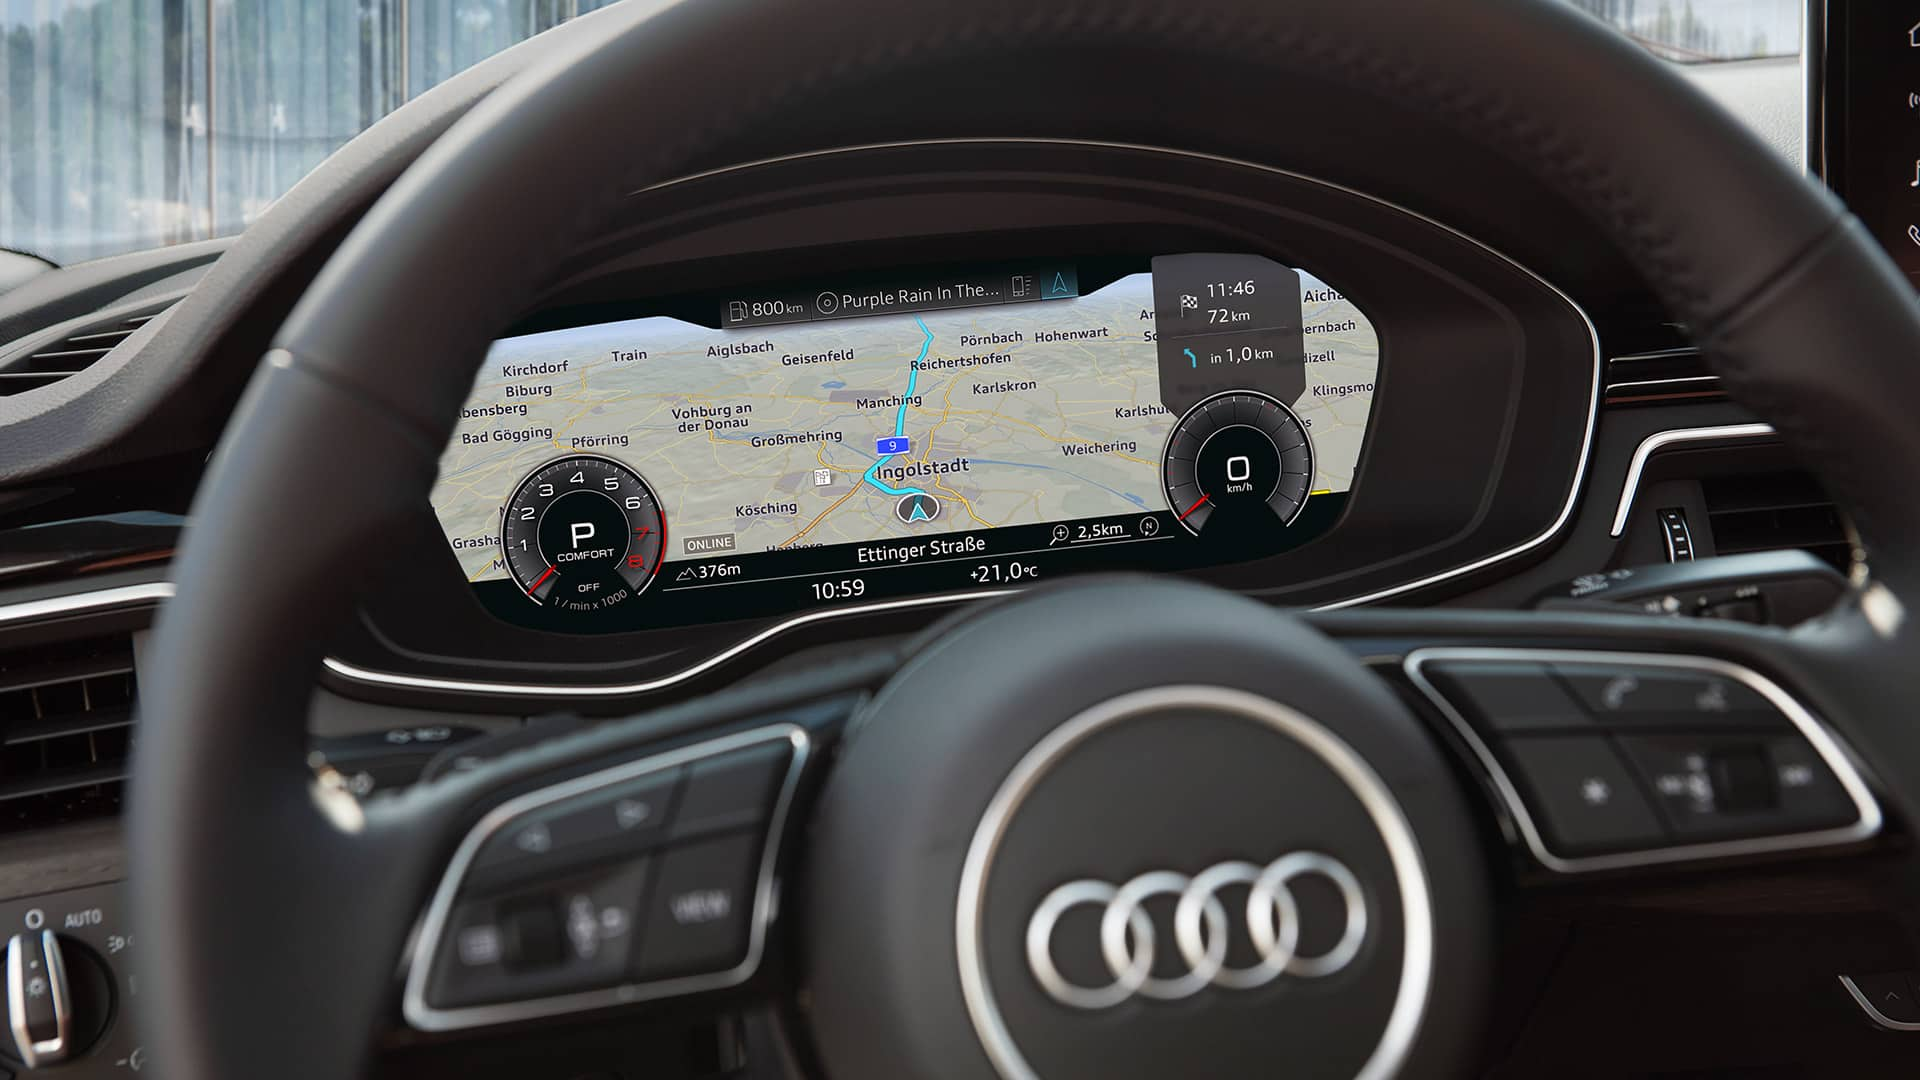 Audi virtual cockpit im Audi A5 Coupé